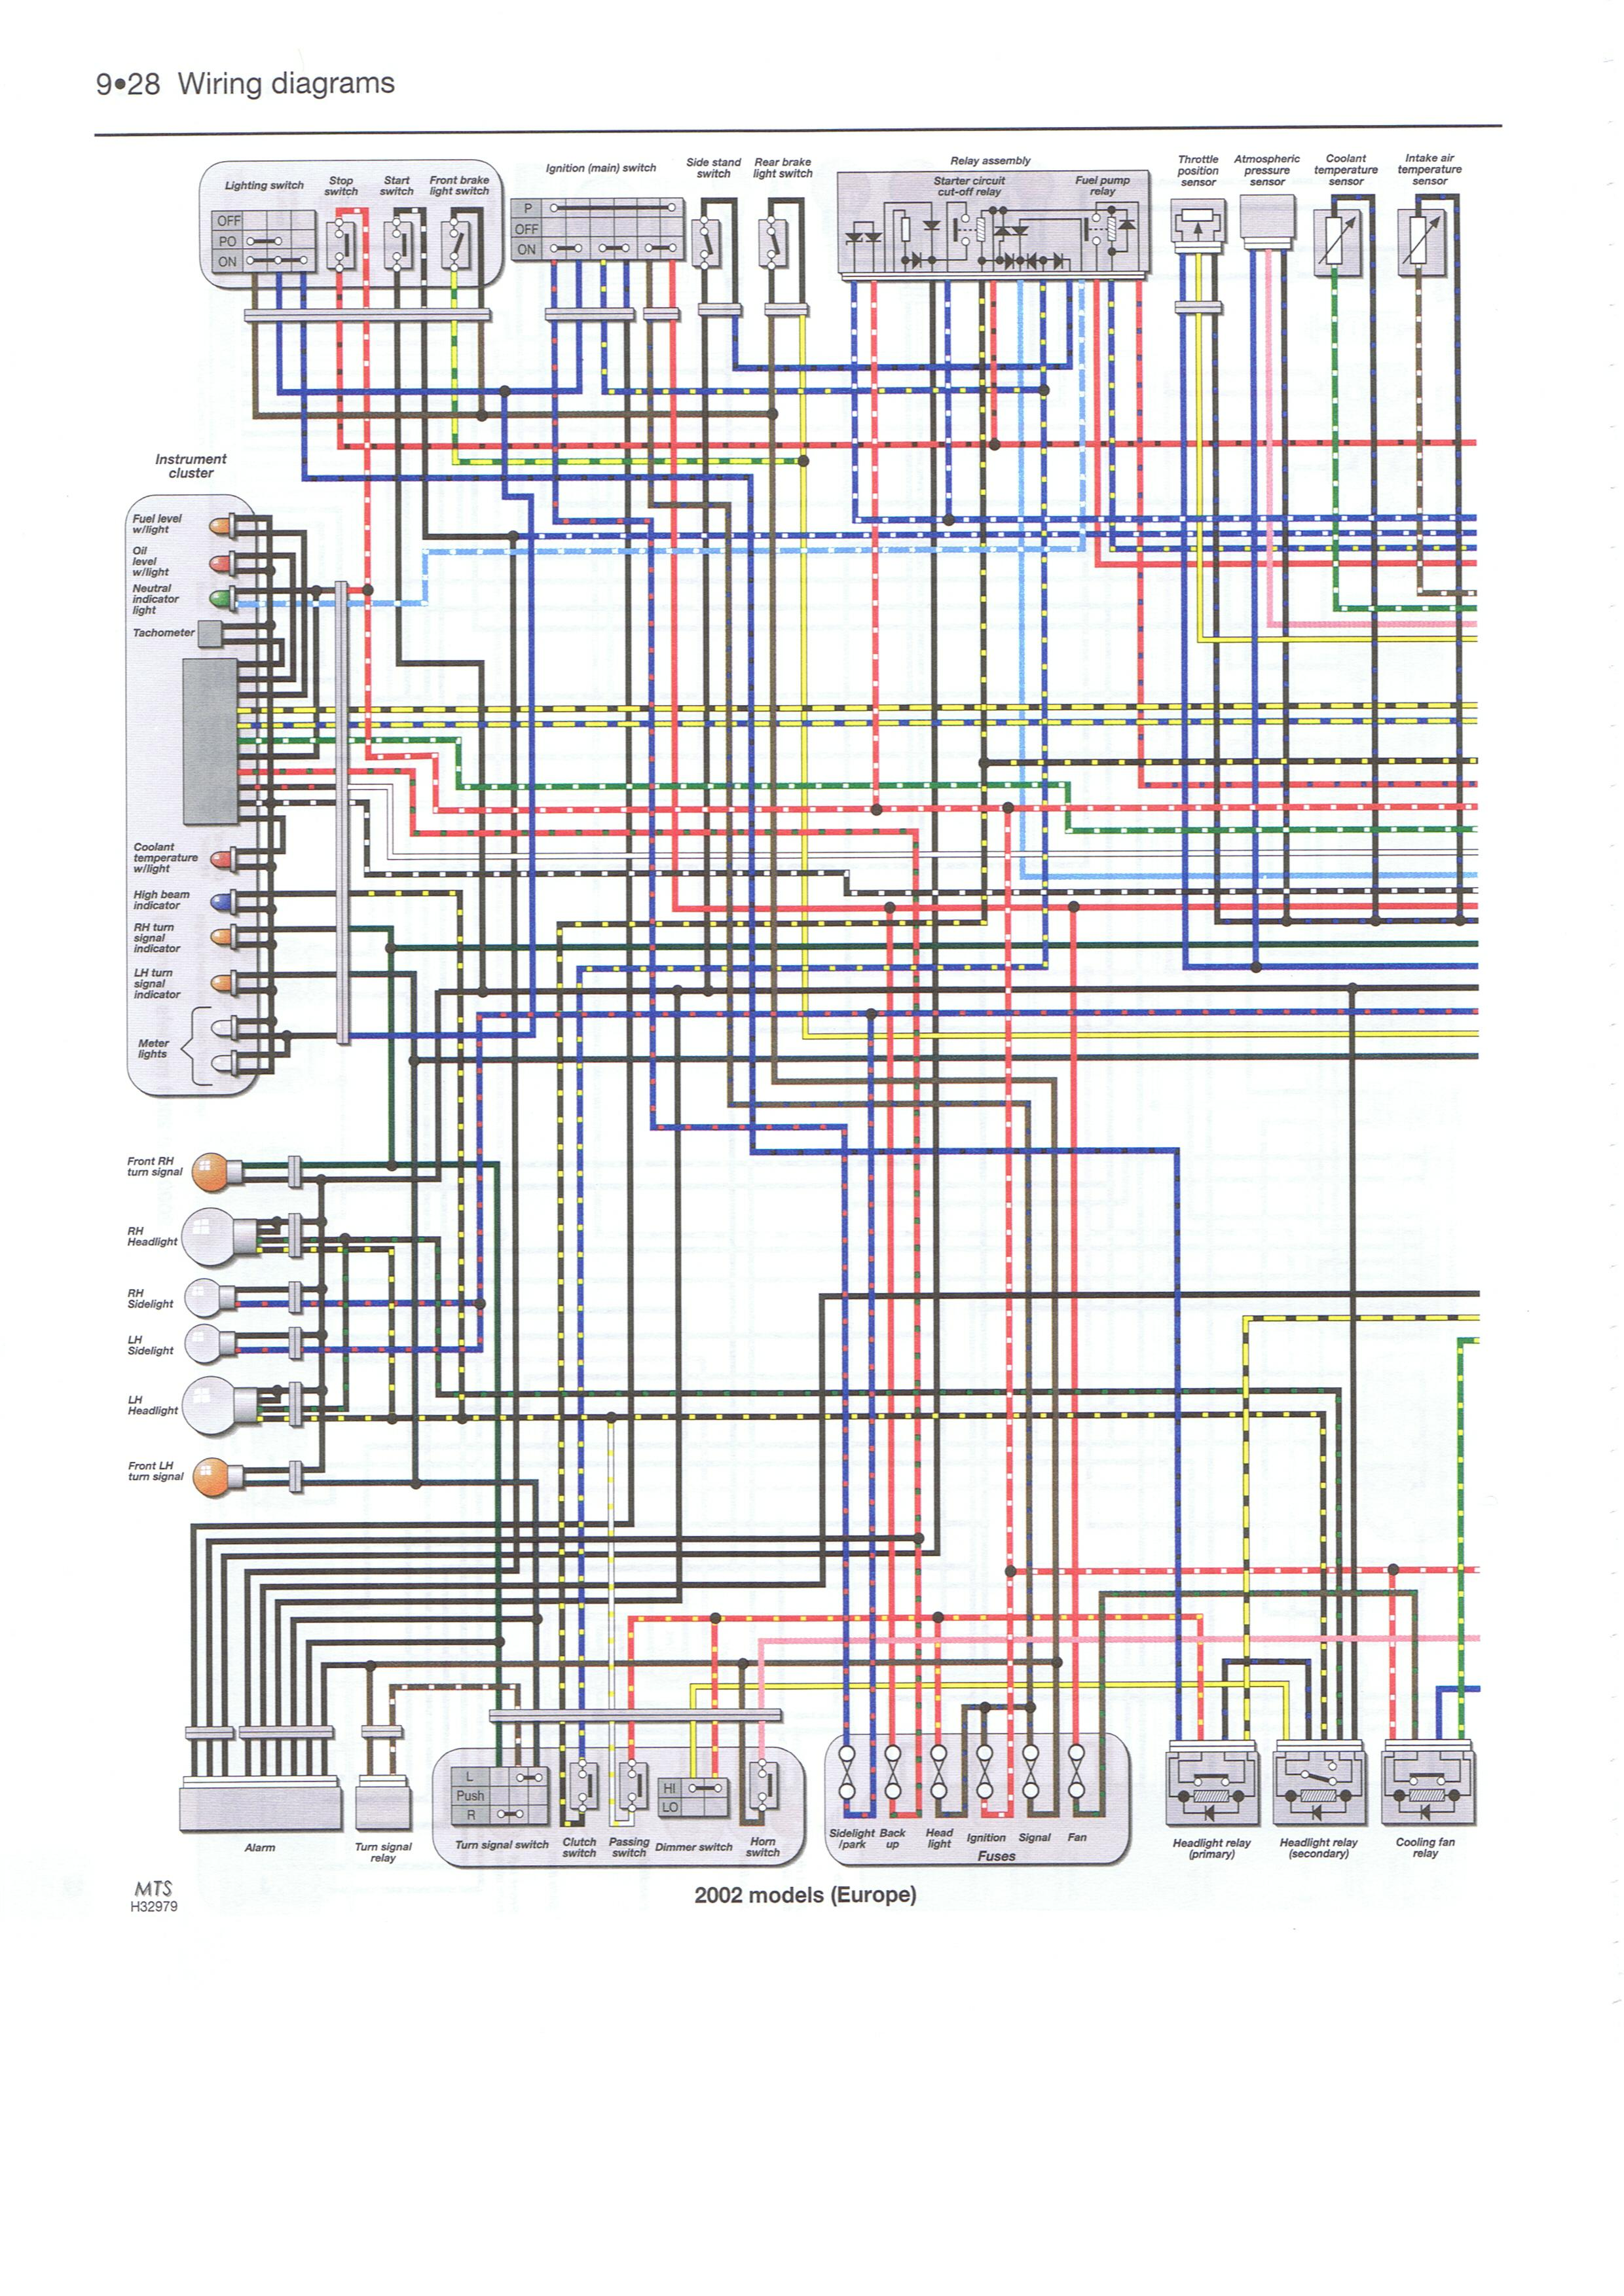 Yamaha R1 Wiring Diagram from static-cdn.imageservice.cloud